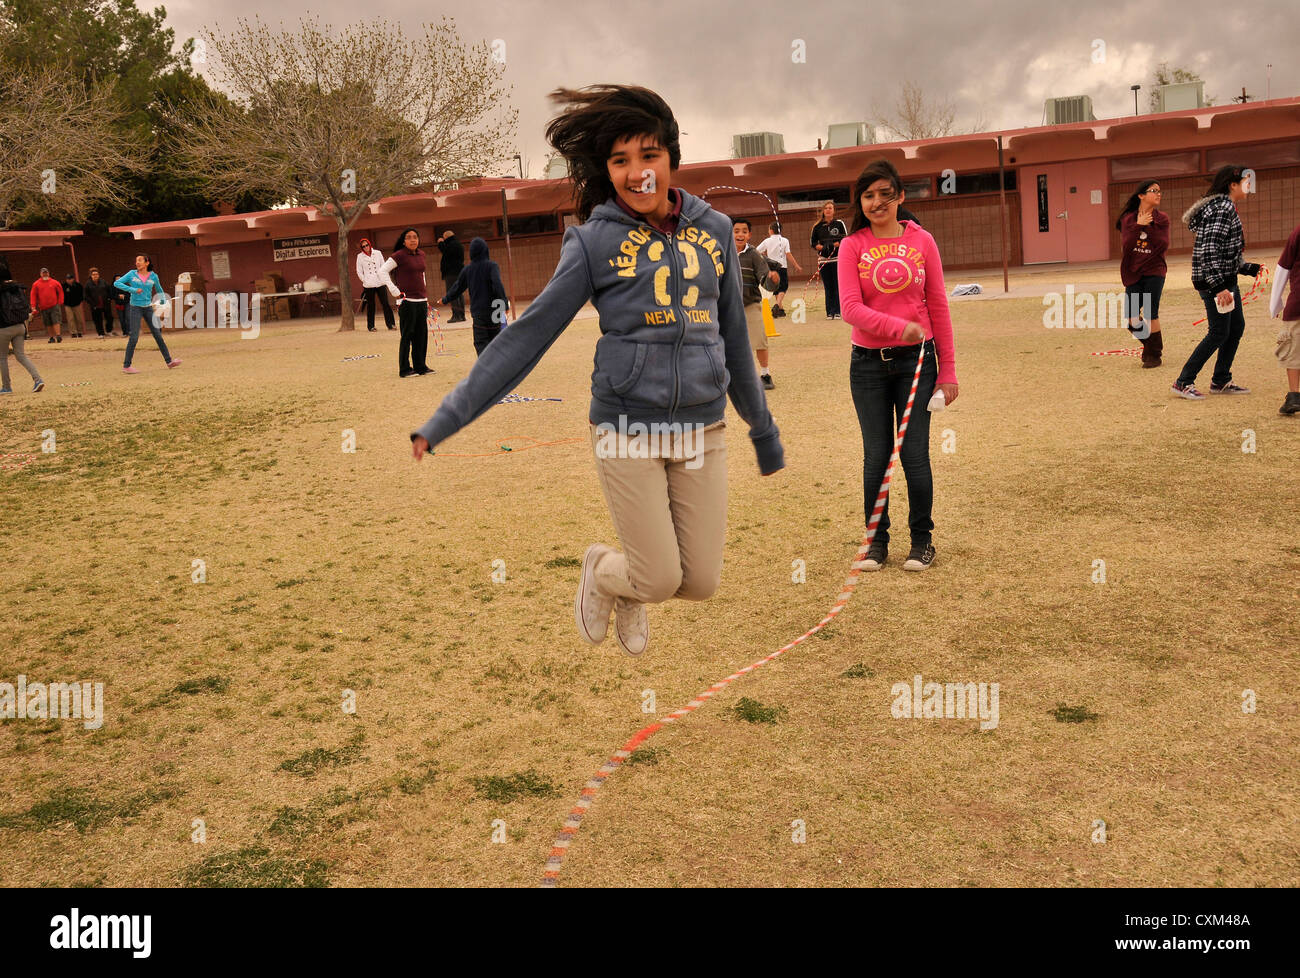 5th-graders participates in Jump Rope For Heart, a fund raising and fitness program in Tucson, Arizona, USA. - Stock Image